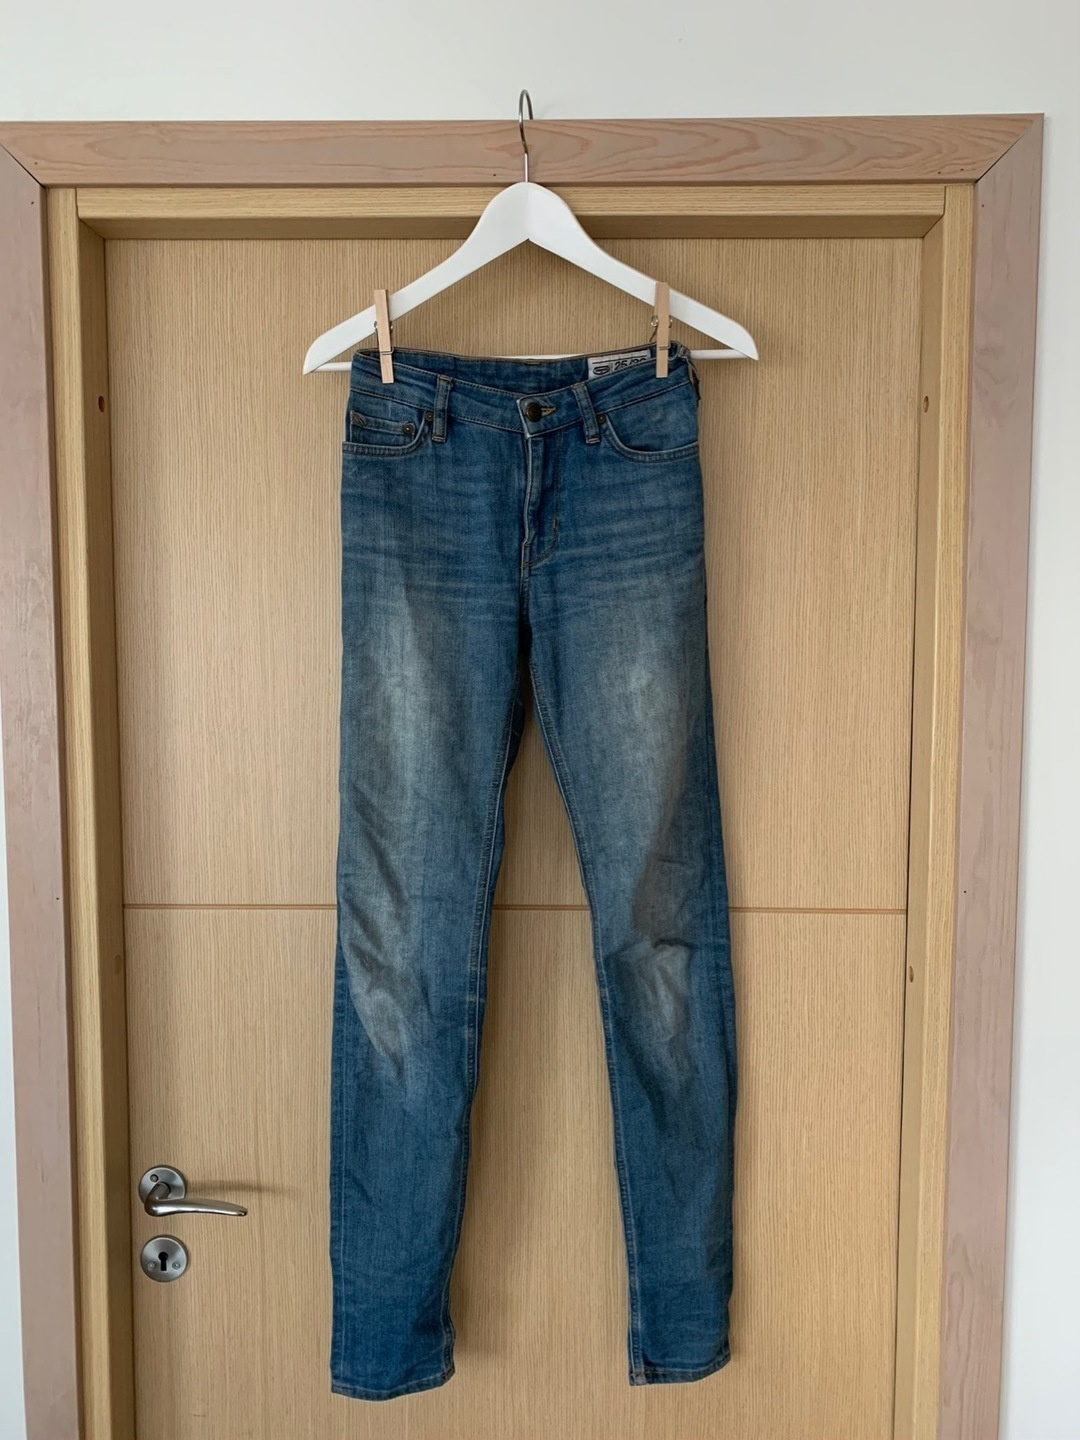 Women's trousers & jeans - CROCKER photo 1